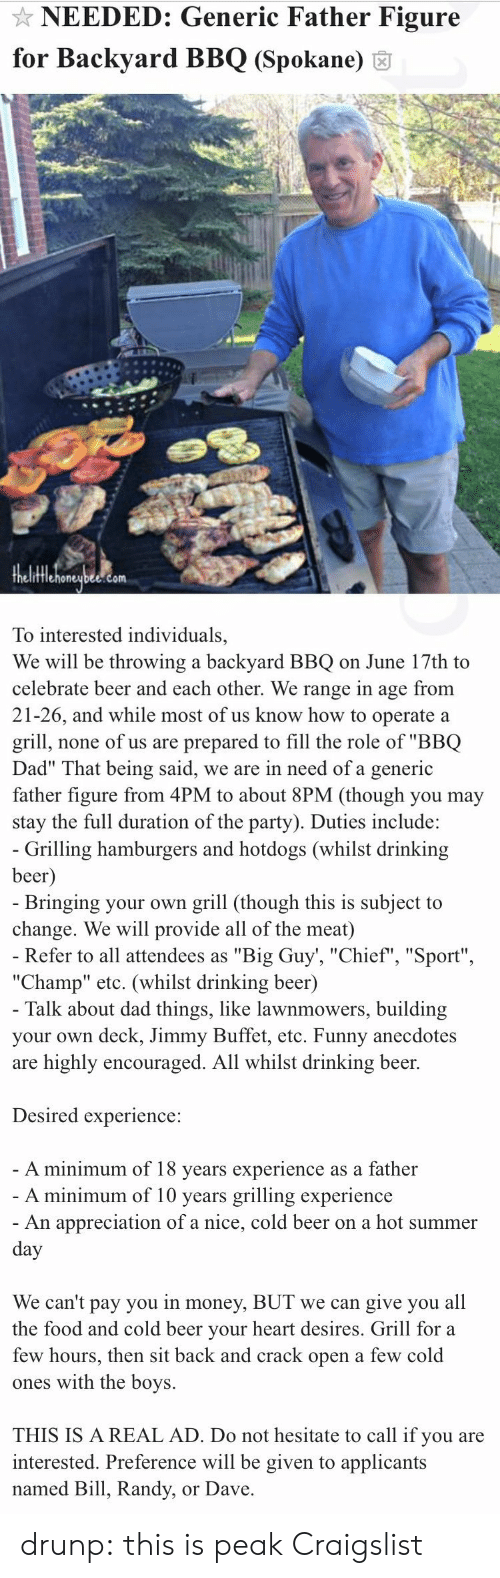 "Beer, Craigslist, and Dad: NEEDED: Generic Father Figure  for Backyard BBQ (Spokane) 6  fflehoneubee.com  To interested individuals,  We will be throwing a backyard BBQ on June 17th to  celebrate beer and each other. We range in age from  21-26, and while most of us know how to operate a  grill, none of us are prepared to fill the role of ""BBQ  Dad"" That being said, we are in need of a generic  father figure from 4PM to about 8PM (though you may  stay the full duration of the party). Duties include:   Grilling hamburgers and hotdogs (whilst drinking  beer  Bringing your own grill (though this is subject to  change. We will provide all of the meat)  Refer to all attendees as ""Big Guy', ""Chief"", ""Sport""  ""Champ"" etc. (whilst drinking beer)  Talk about dad things, like lawnmowers, building  your own deck, Jimmy Buffet, etc. Funny anecdotes  are highly encouraged. All whilst drinking beer.  Desired experience:  A minimum of 18 vears experience as a father  A minimum of 10 years grilling experience  An appreciation of a nice, cold beer on a hot summer  We can't pay you in money, BUT we can give you all  the food and cold beer vour heart desires. Grill for a  few hours, then sit back and crack open a few cold  ones with the boys.  THIS IS A REAL AD. Do not hesitate to call if you are  interested. Preference will be given to applicants  named Bill, Randy, or Dave drunp: this is peak Craigslist"